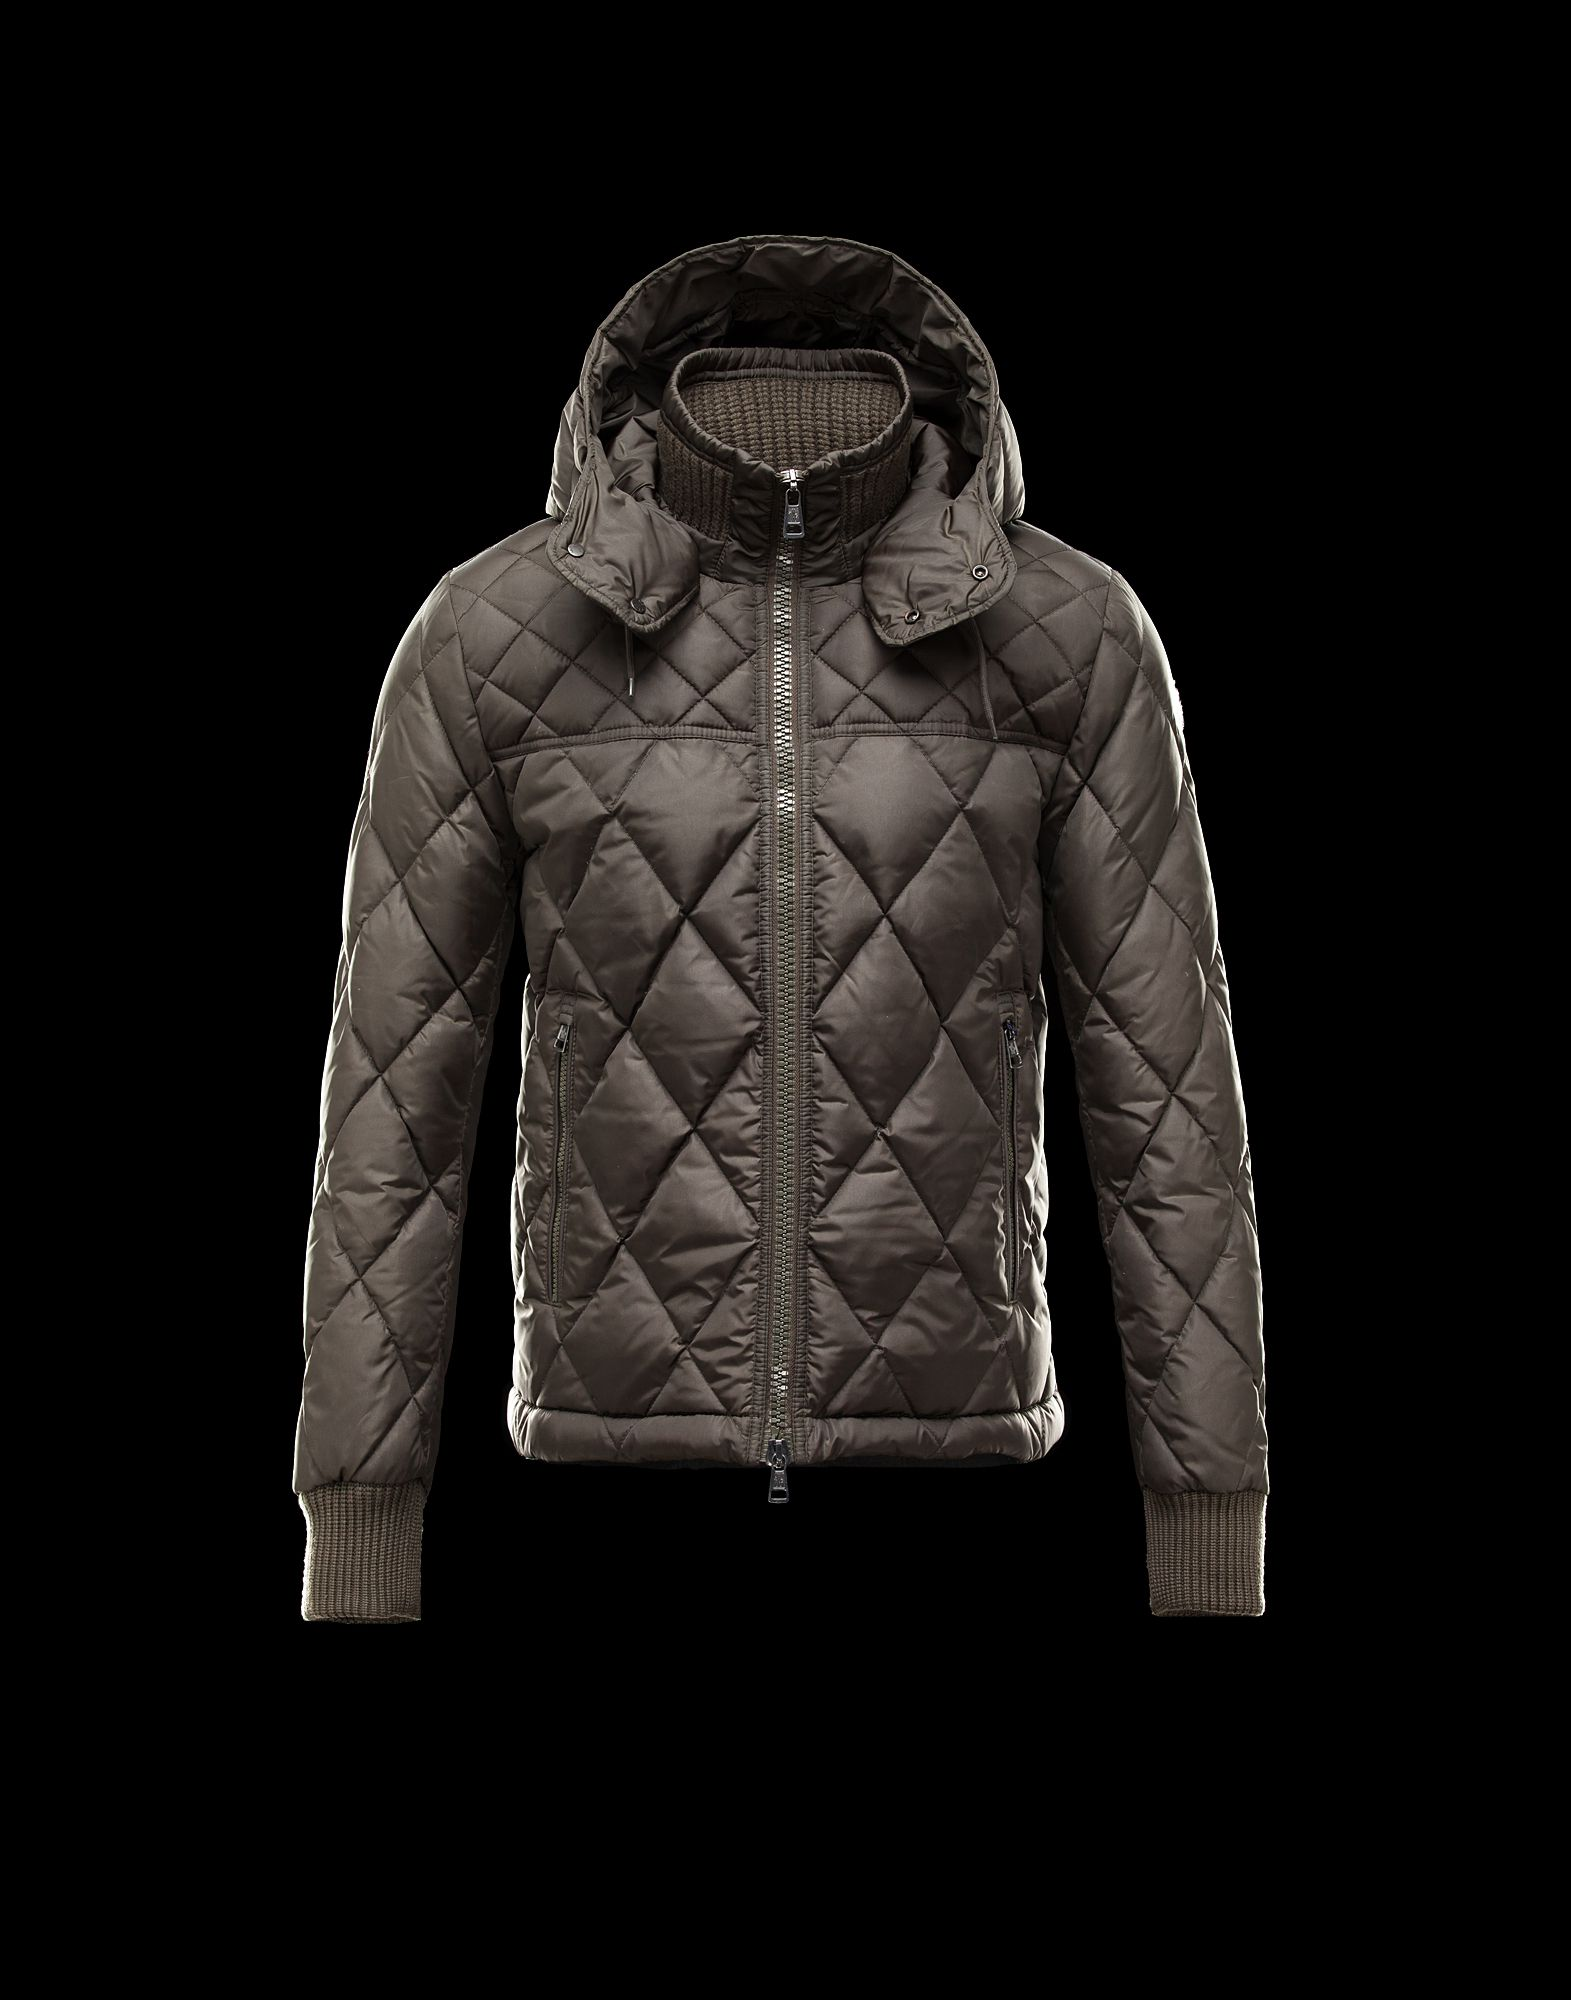 Moncler Girardot Coats Men Winter Hoody Parka